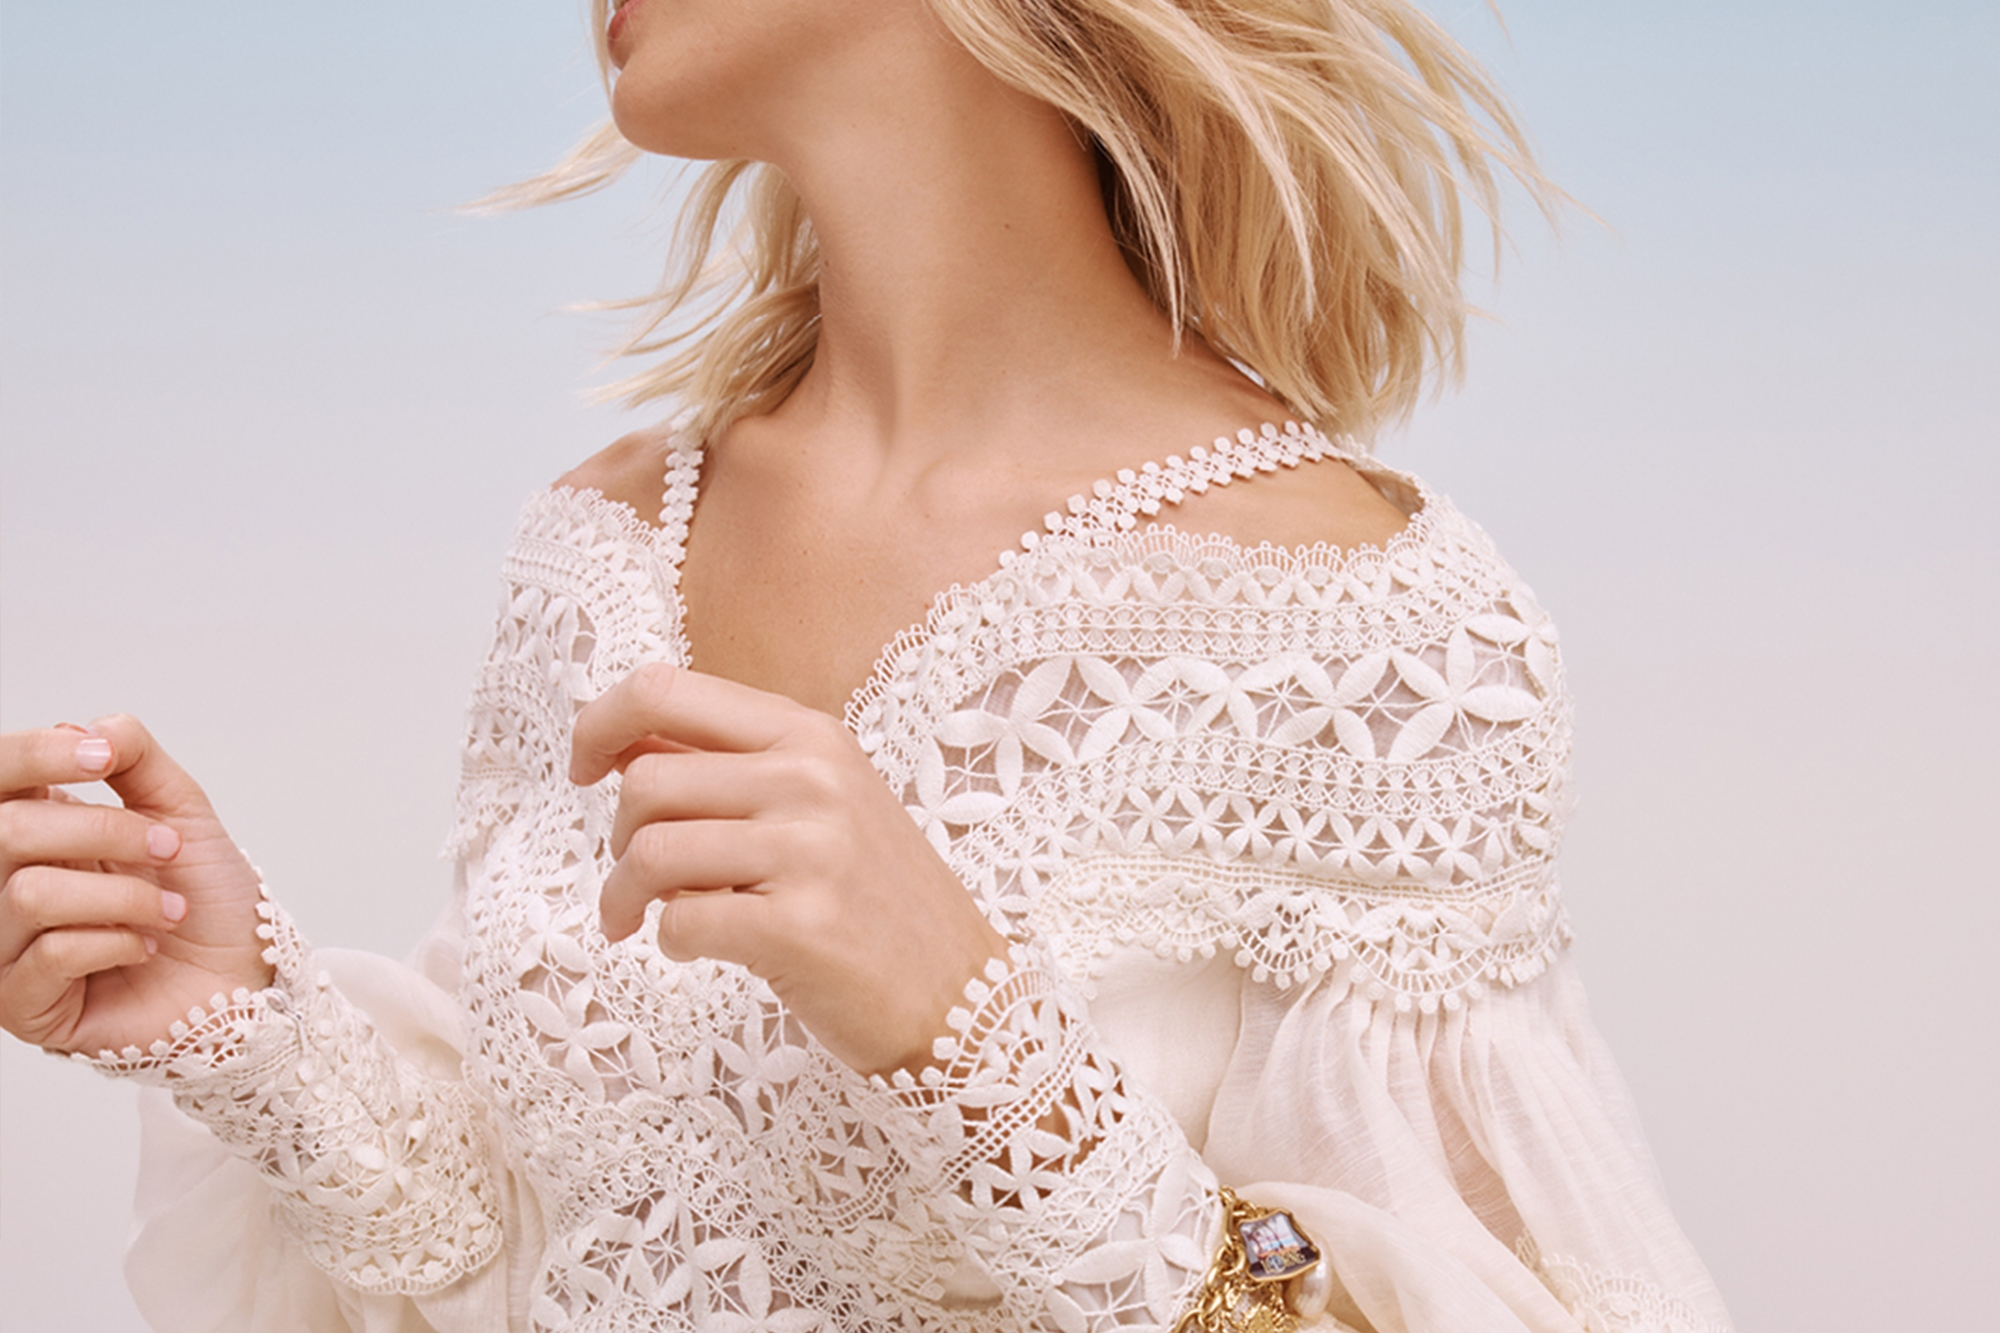 White lace Details of Resort 2022 collection